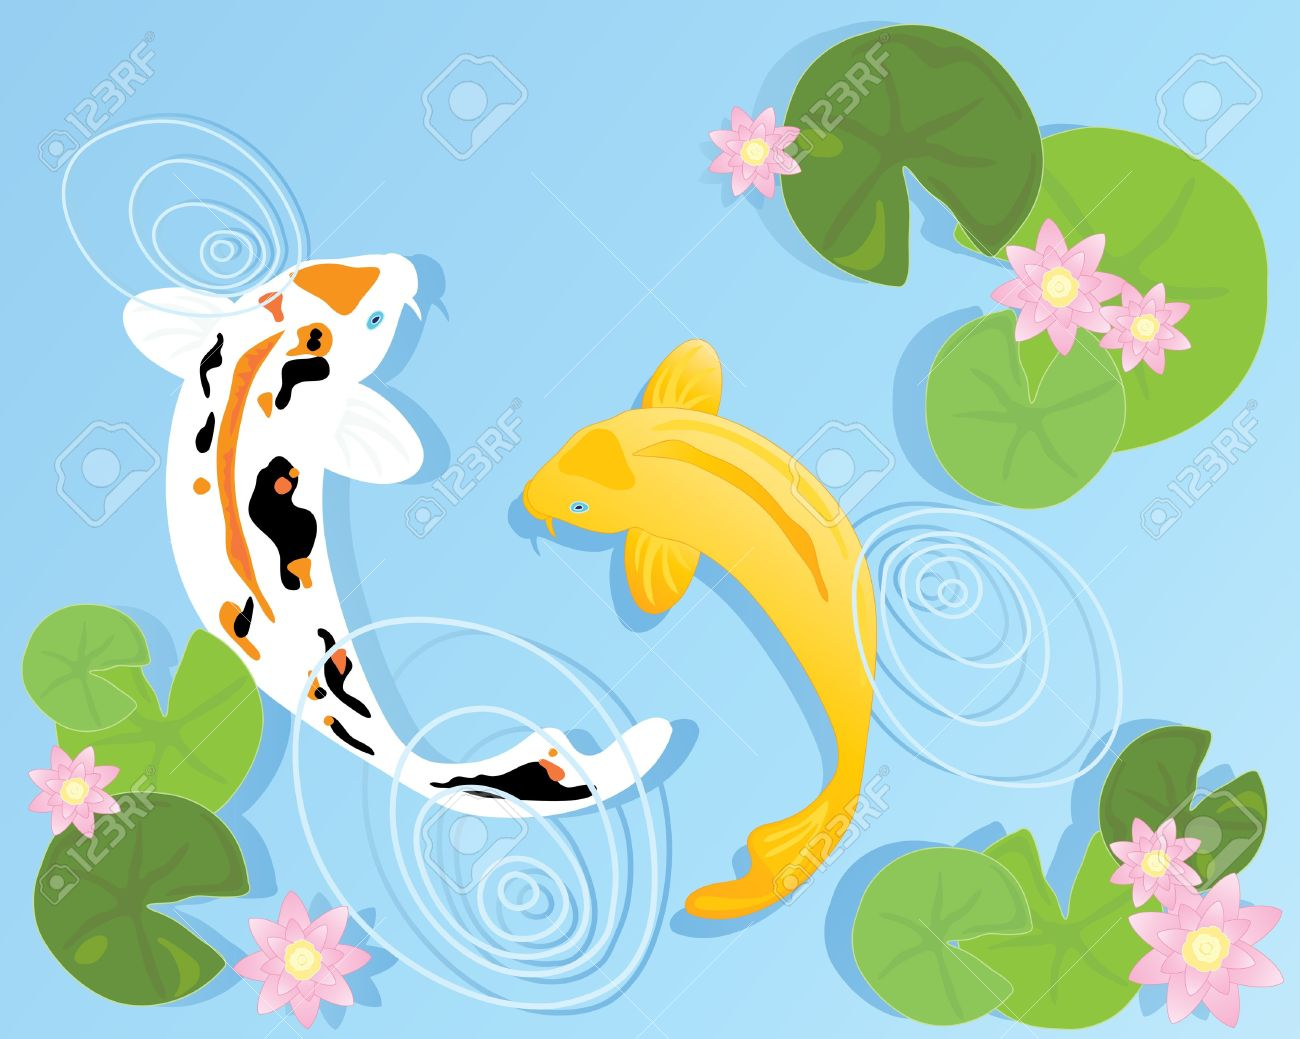 Koi fish pond clipart.